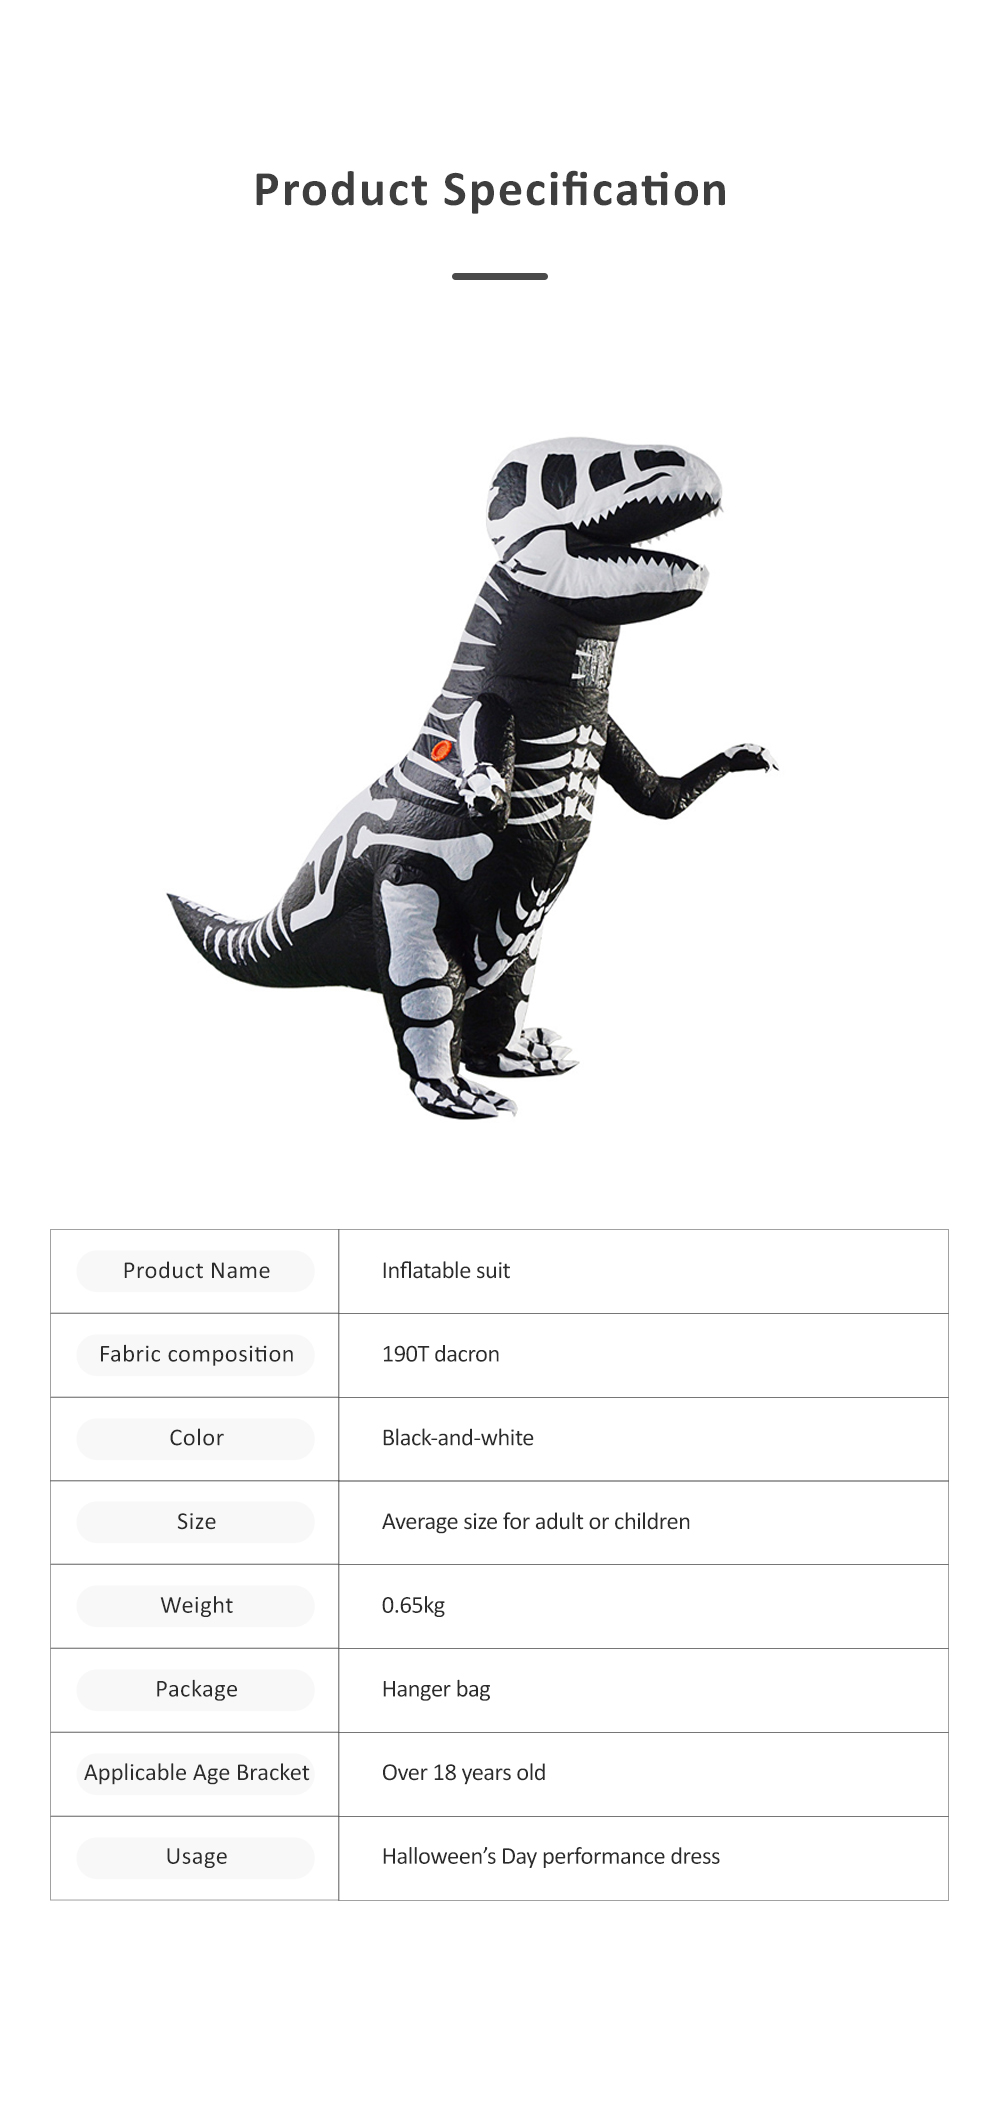 Tyrannosaurus Inflatable Suit for Halloween's Day Performance Waterproof Durable Walking Dinosaur Inflated Pressure Dress Inflatable Costume 6